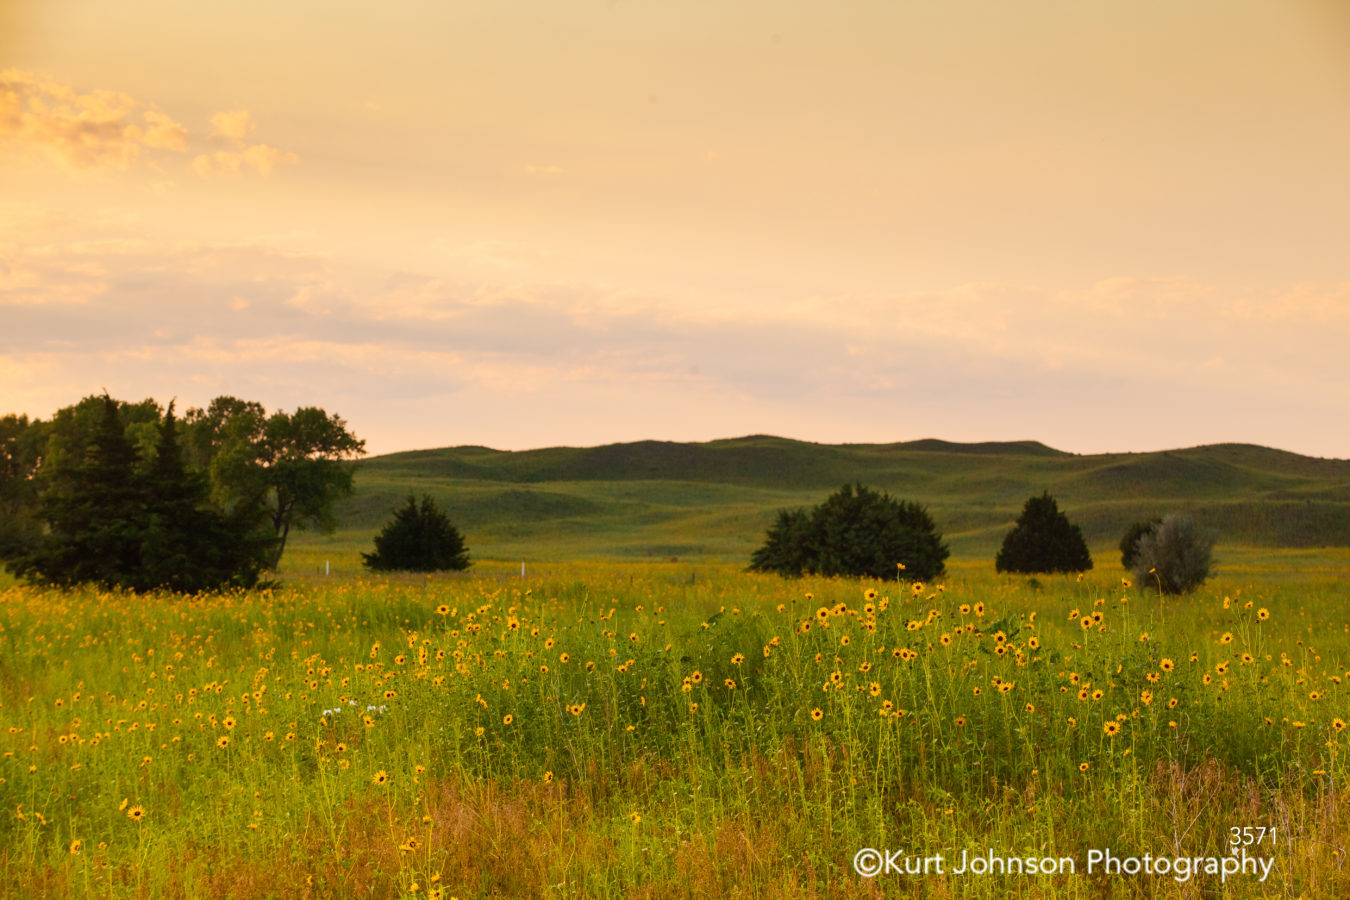 sunset field midwest wildflowers green grass country prairie landscape